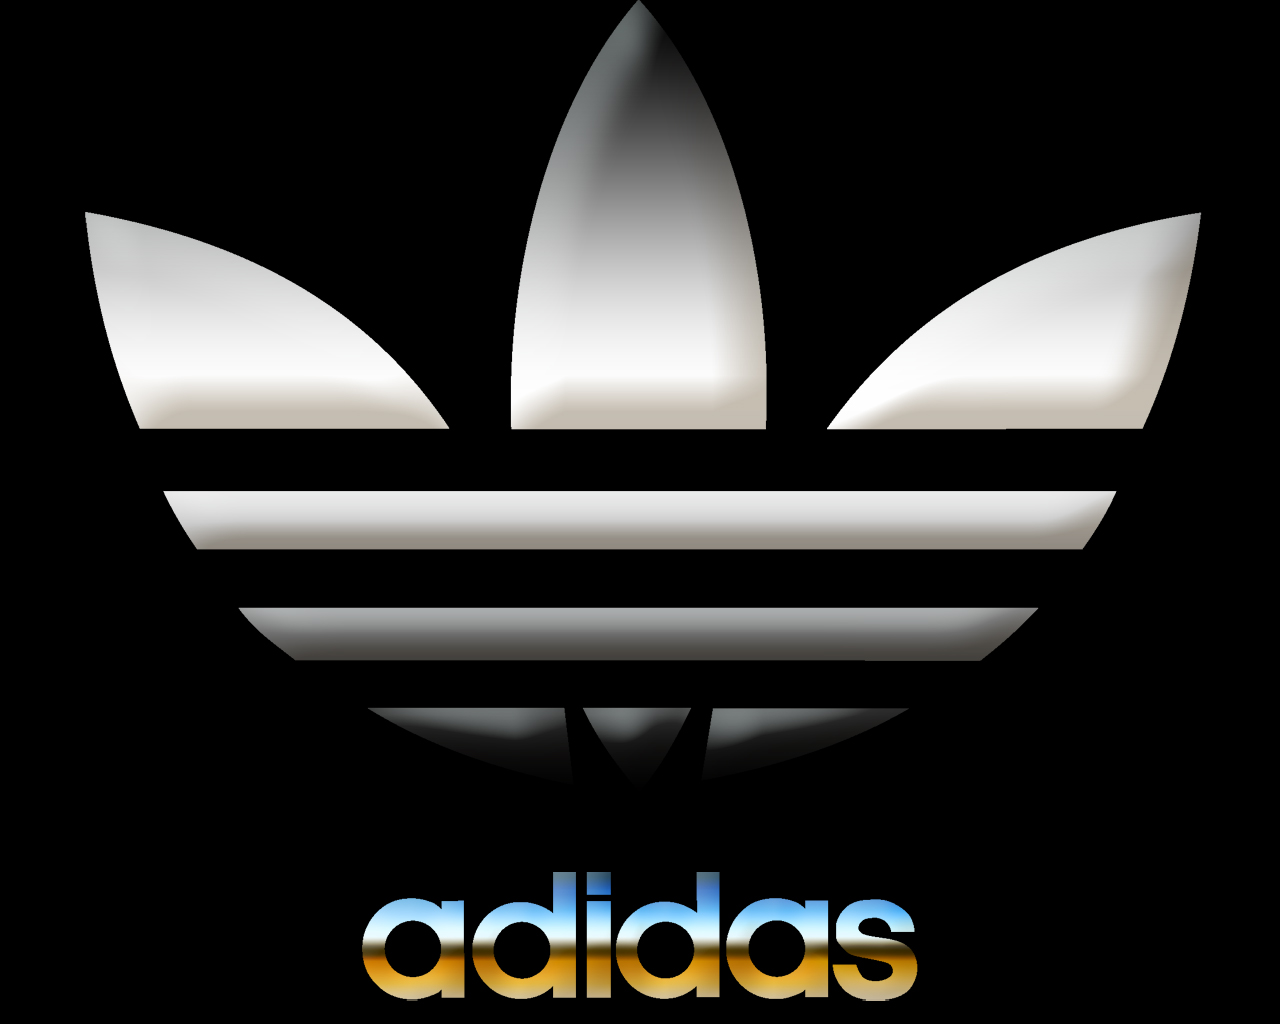 Adidas Logo Wallpaper 6297 Hd Wallpapers in Logos   Imagescicom 1280x1024